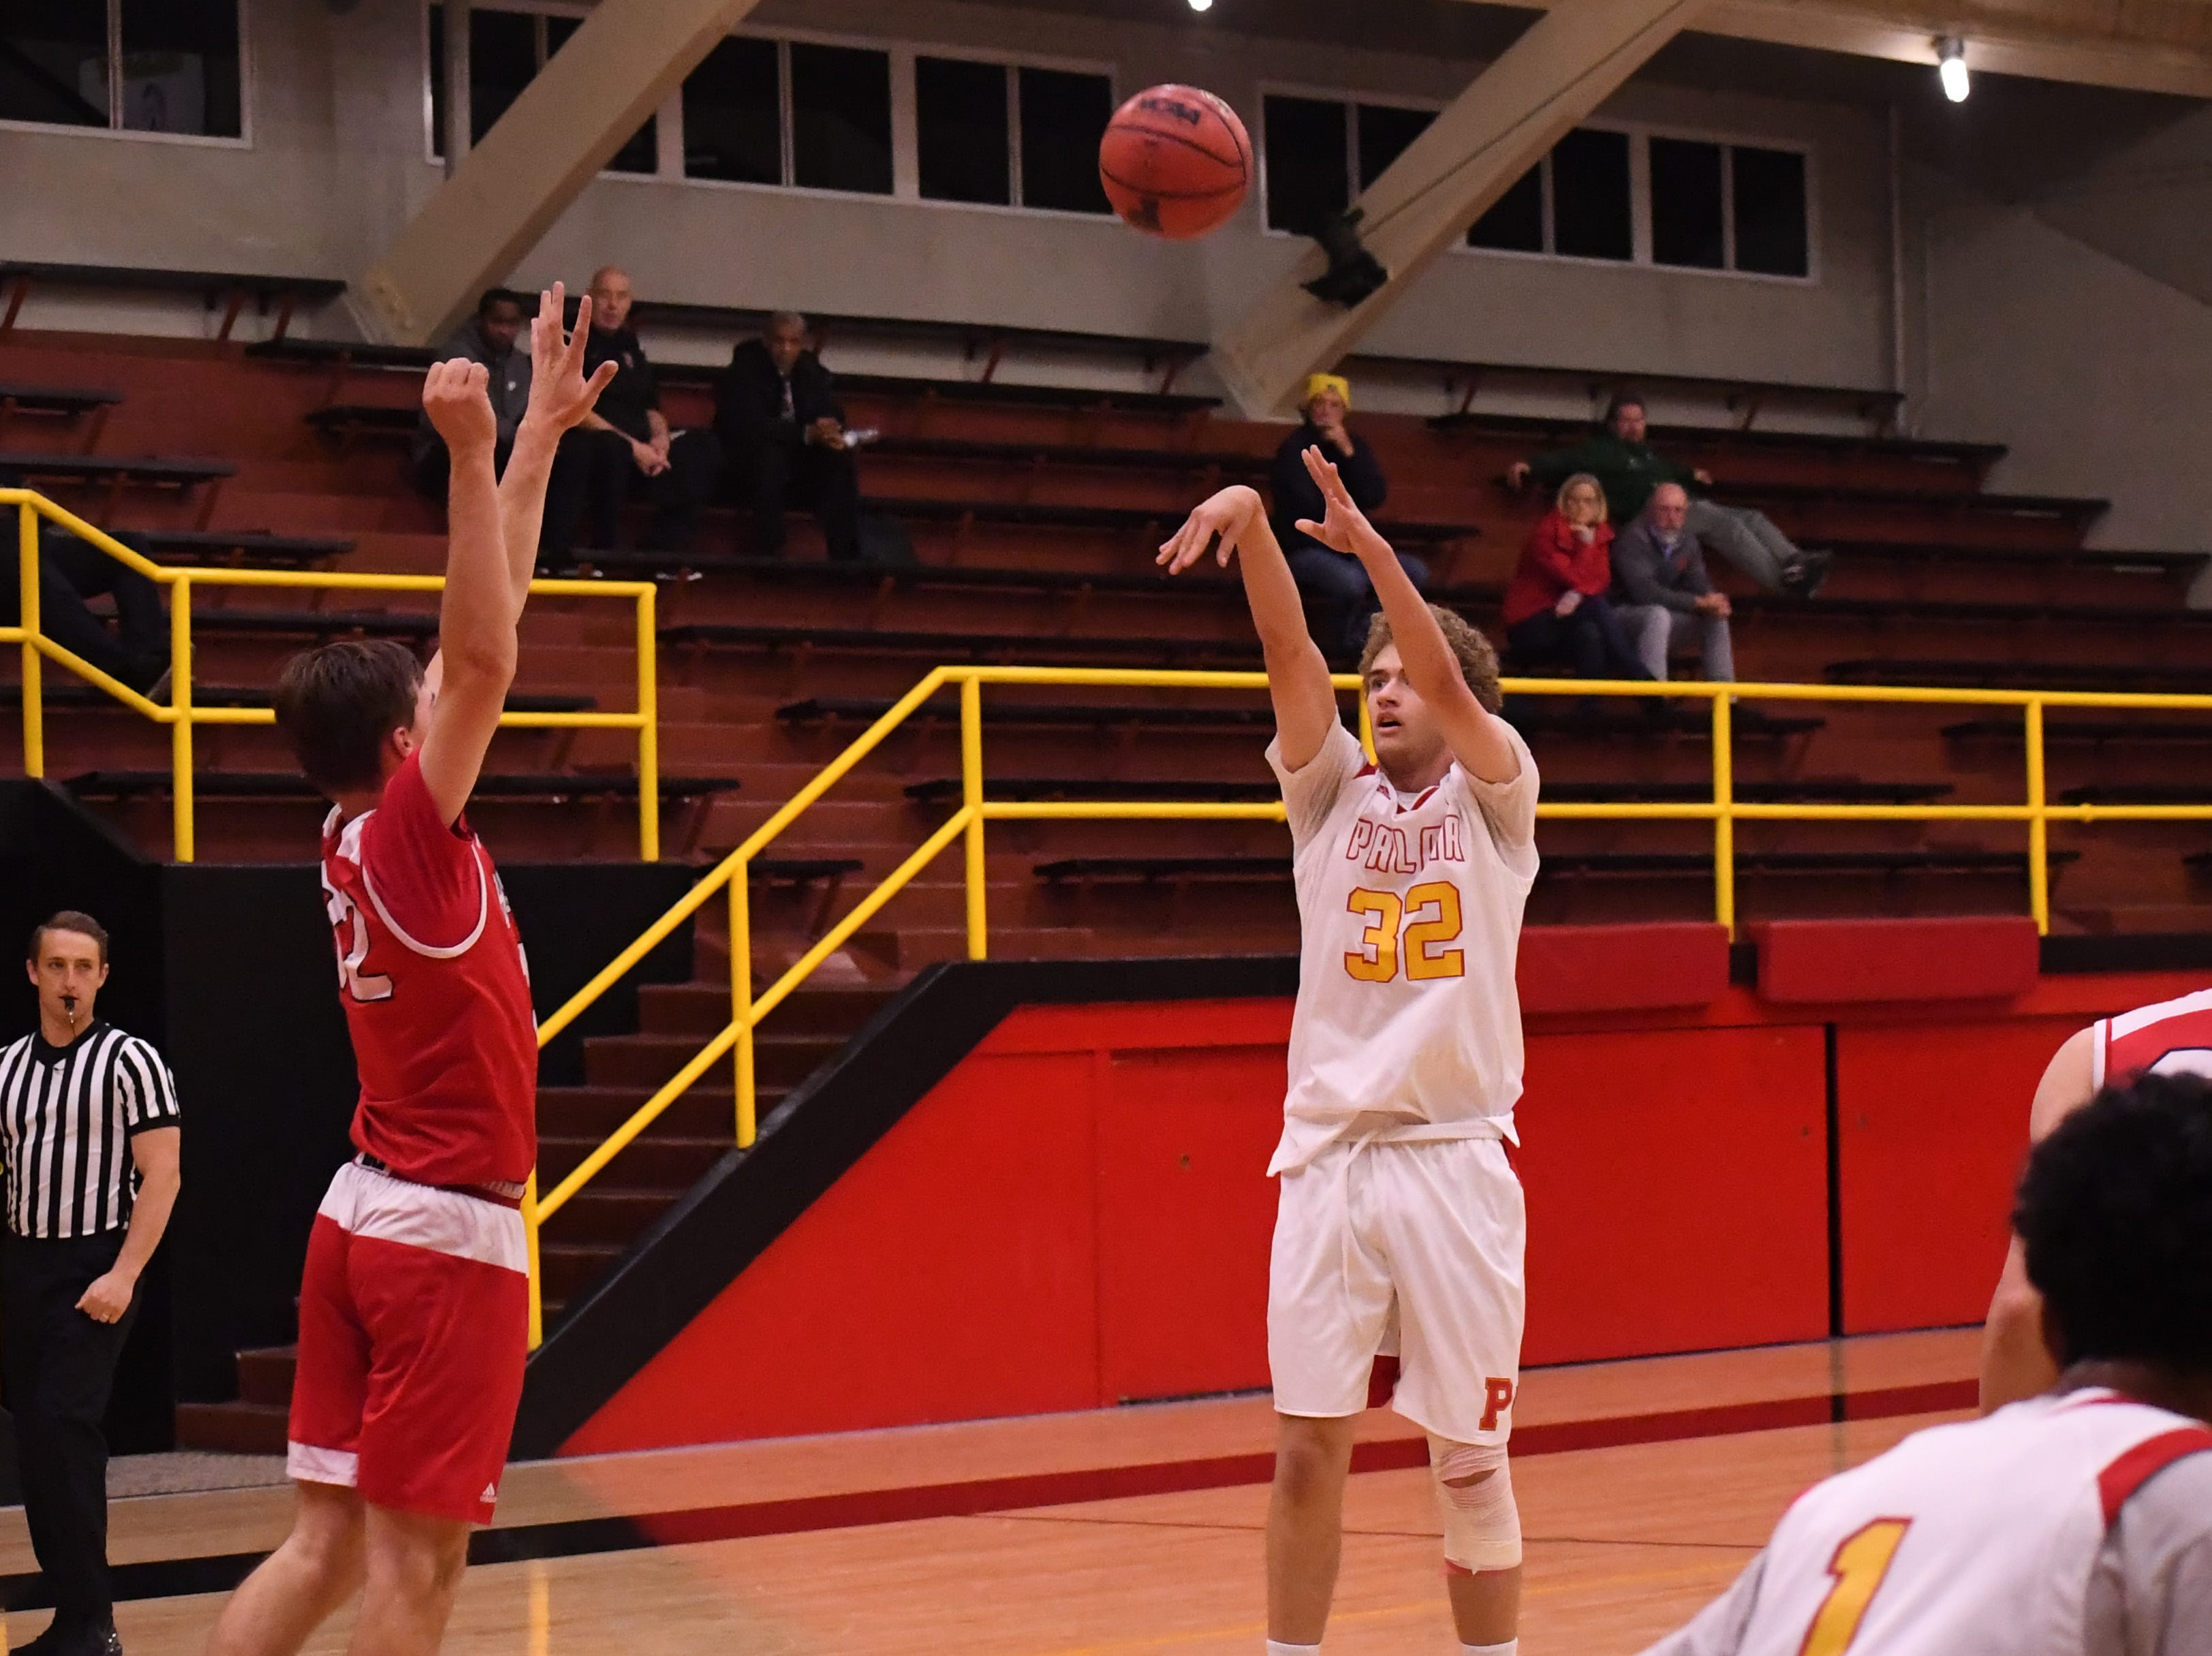 Palma forwad Colin Neff (32) knocks down a 3-point shot in the second quarter.